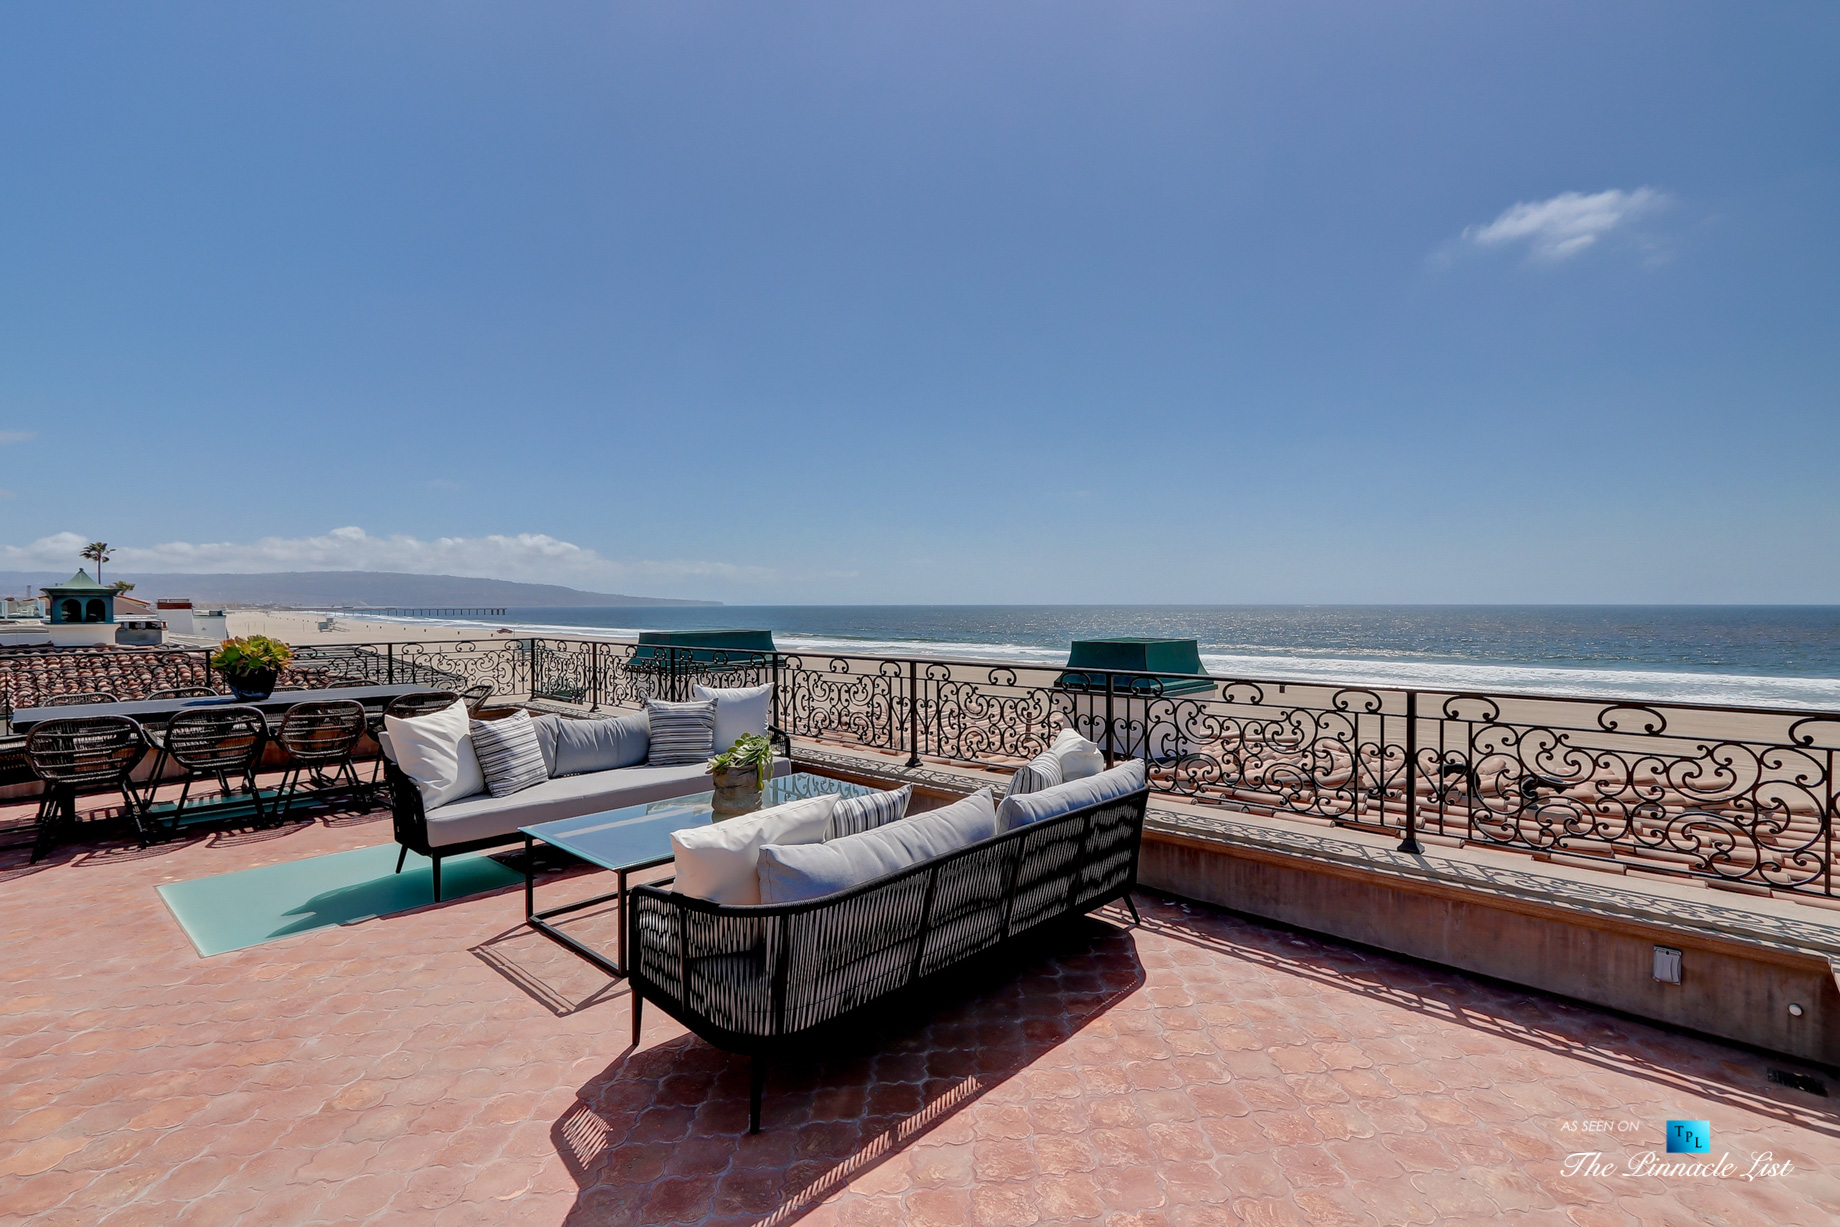 2806 The Strand, Hermosa Beach, CA, USA - Rooftop Deck Lounge - Luxury Real Estate - Oceanfront Home